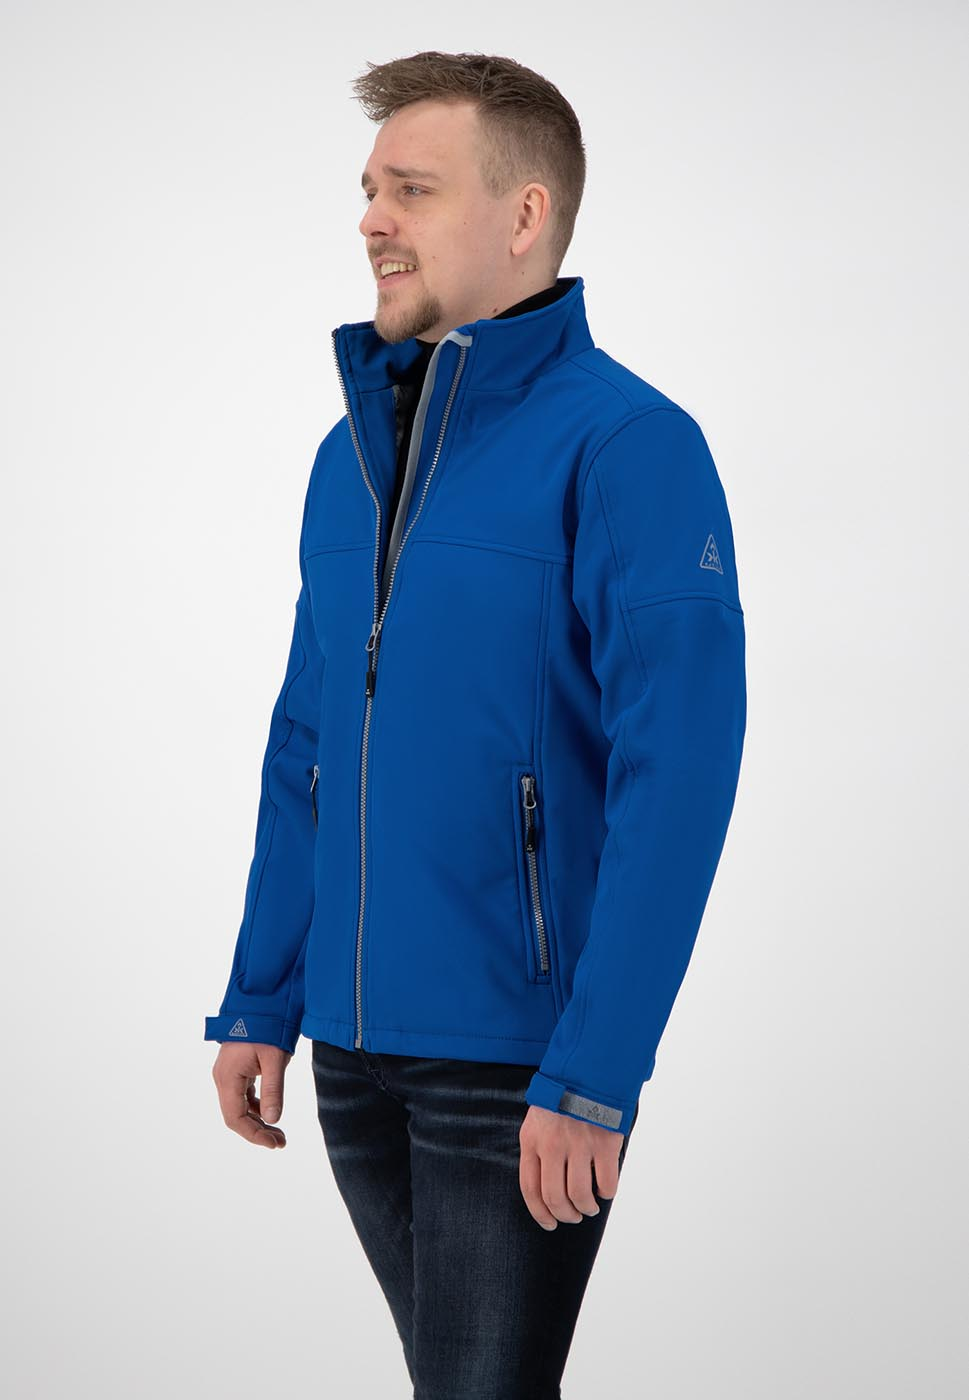 Kjelvik Scandinavian Clothing - Men Softshell Odense Classic blue